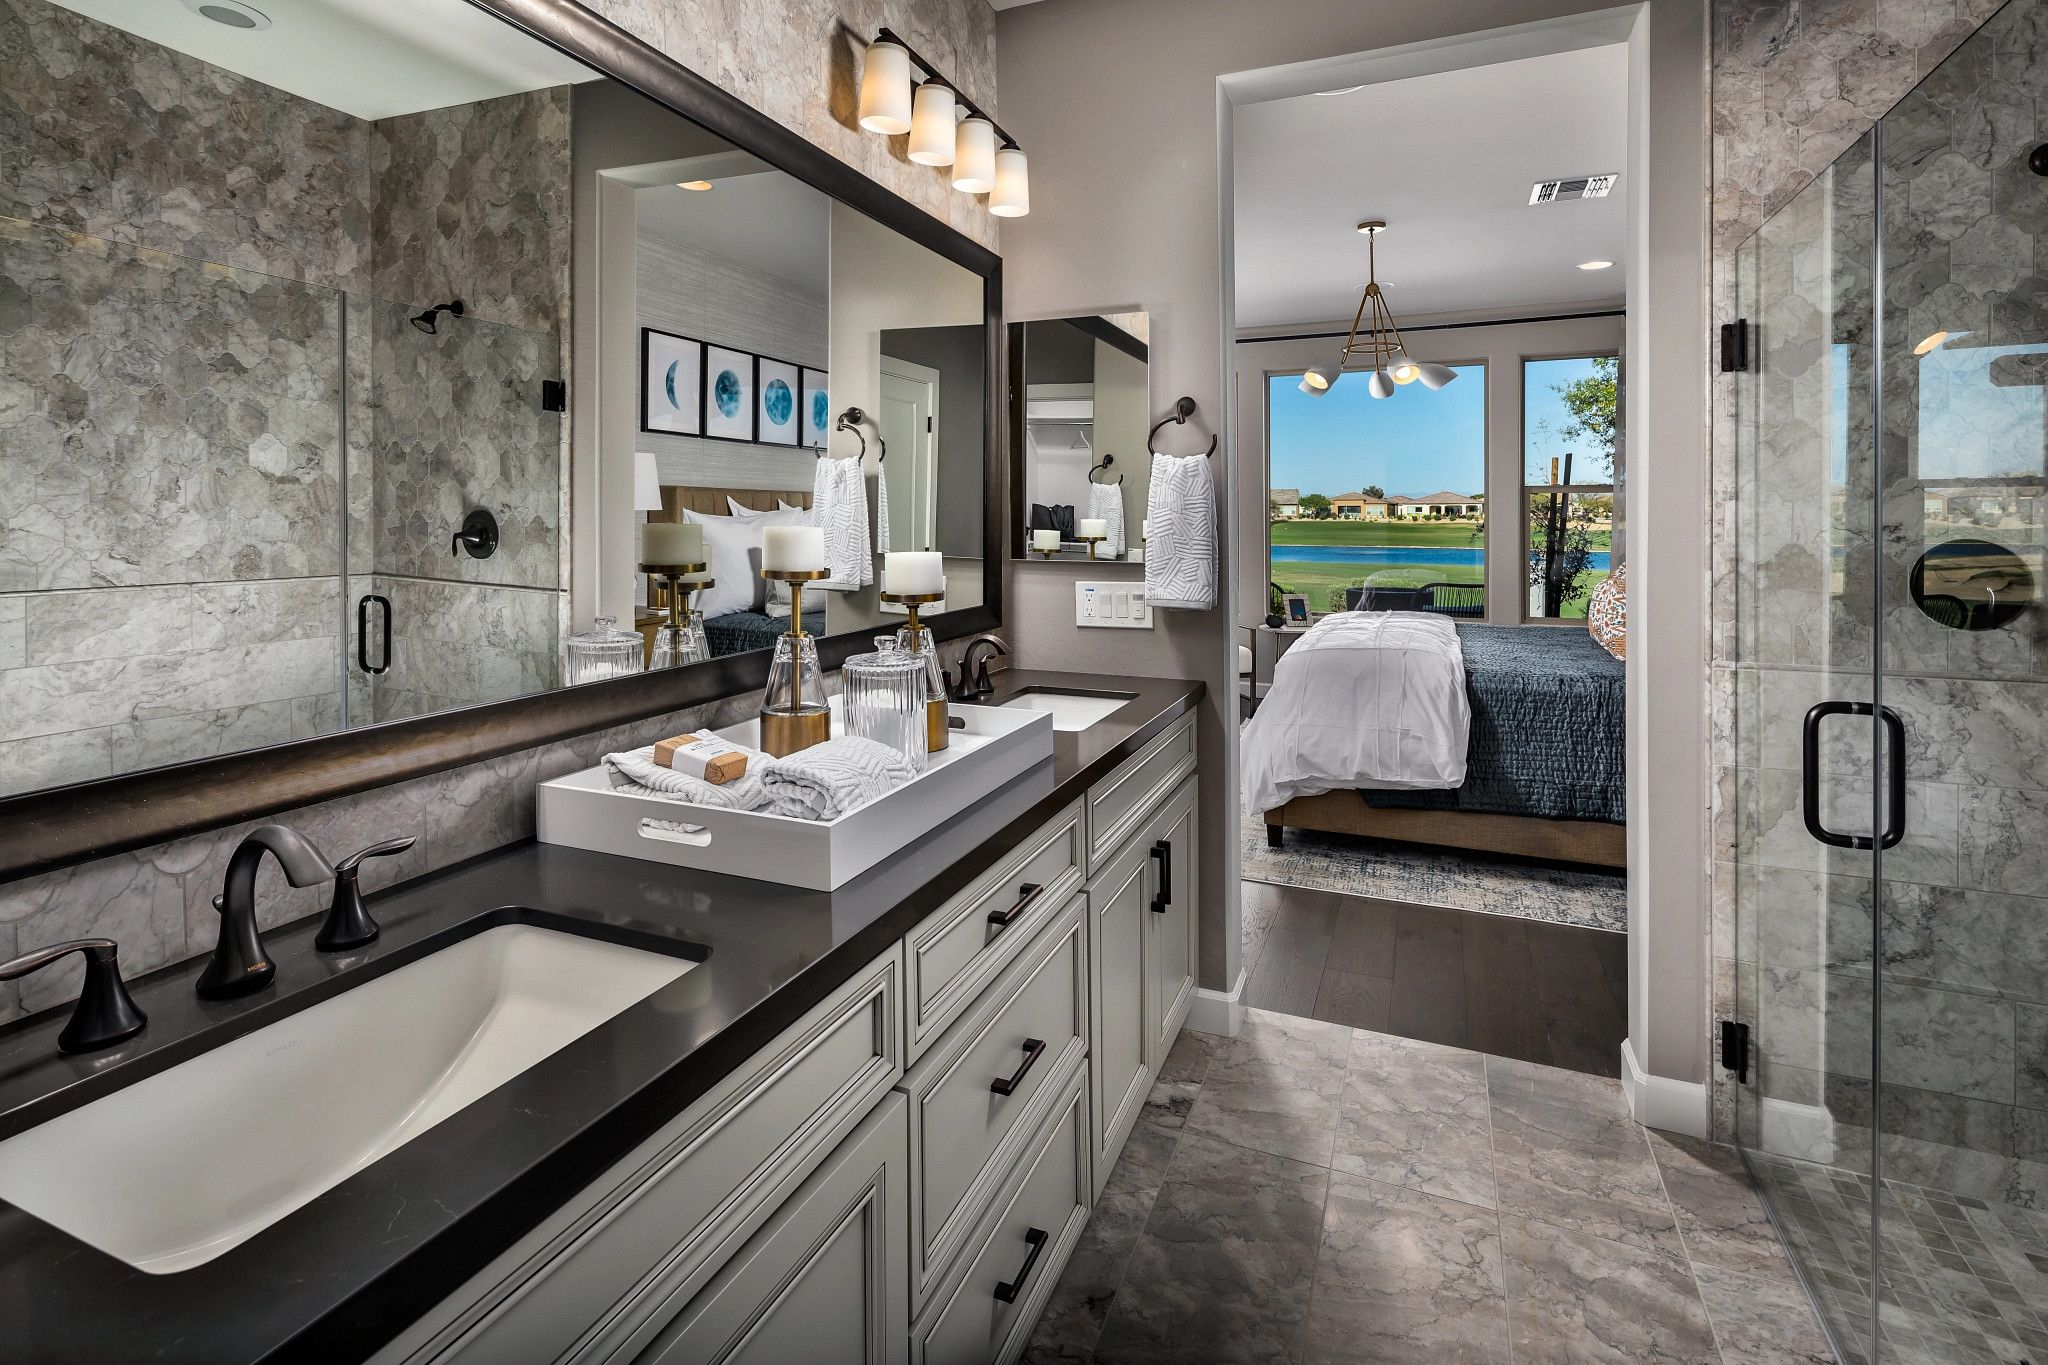 Bathroom featured in the Valletta By Shea Homes - Trilogy in Phoenix-Mesa, AZ